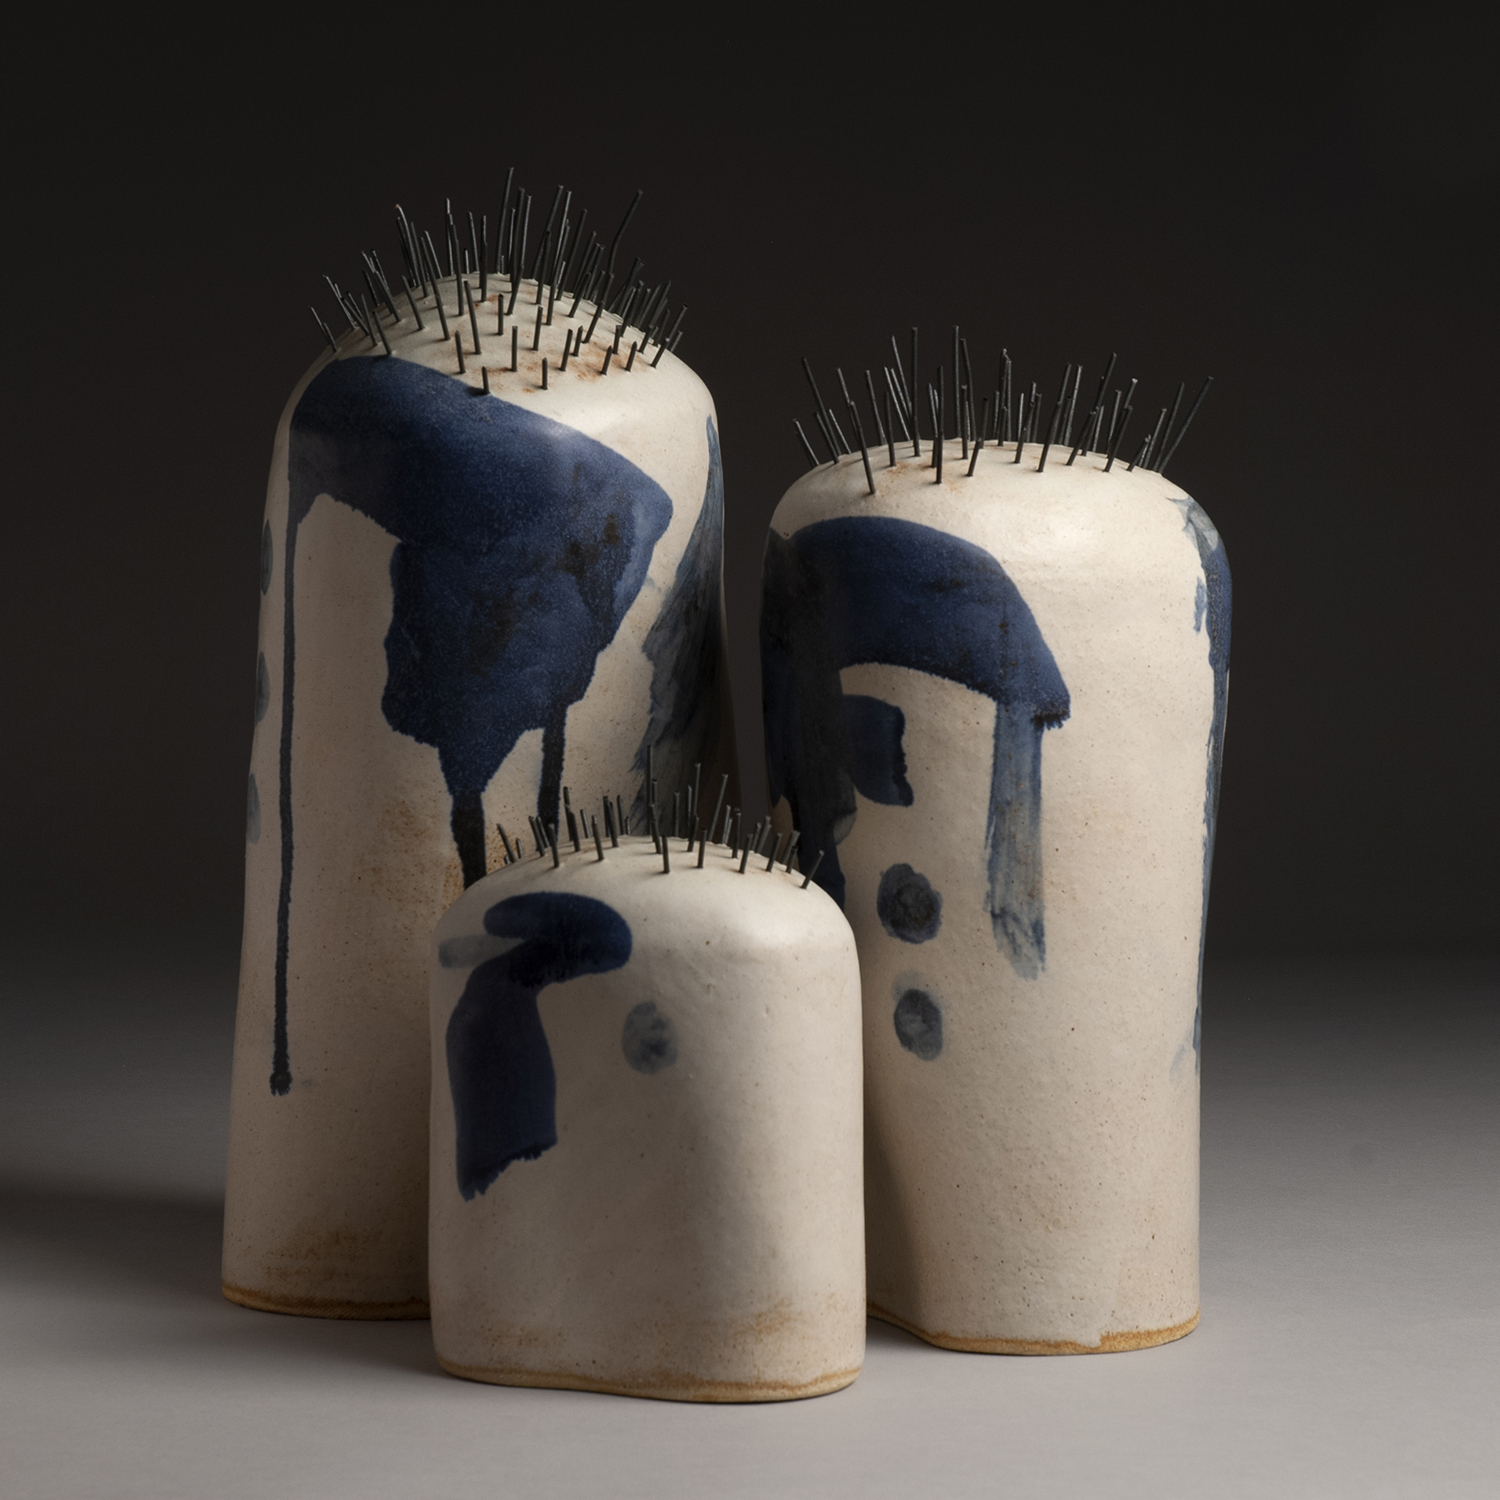 The Family Spike, 2019, 16x15x15 inches, clay and glaze